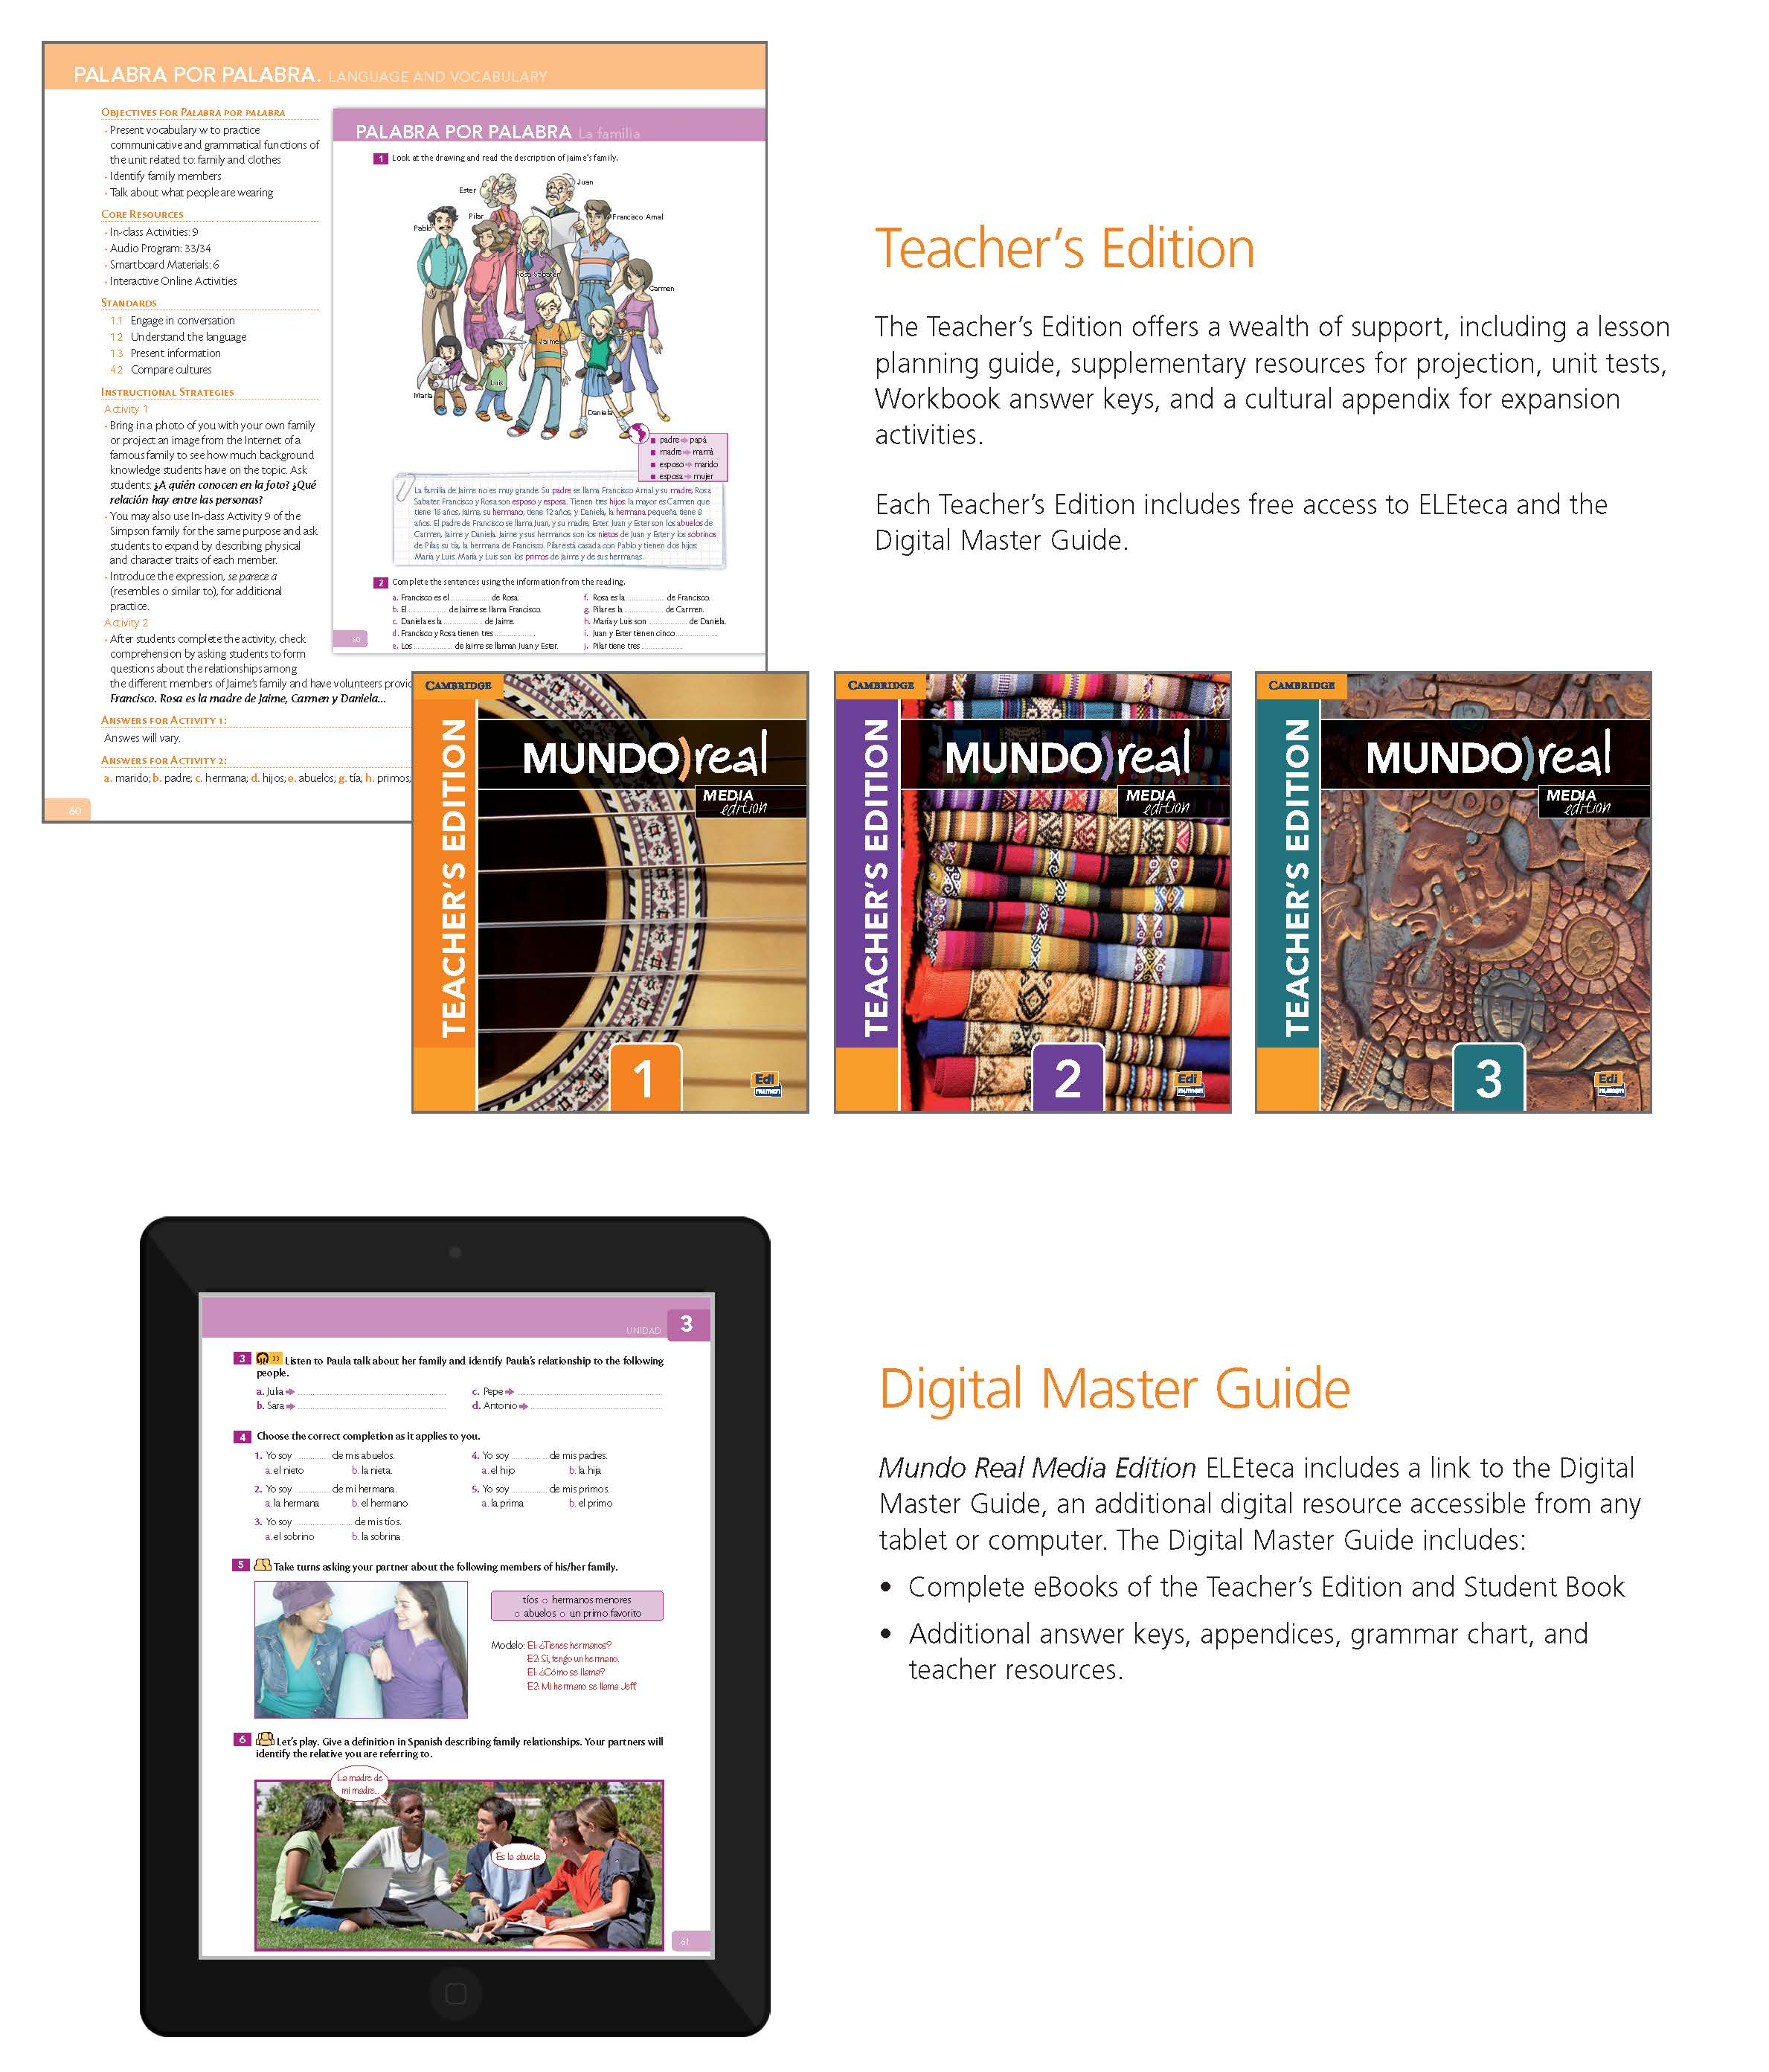 Cambridge spanish mundo real media edition in addition to eleteca the central learning management system of mundo real media edition the program features a number of robust teacher support tools fandeluxe Images